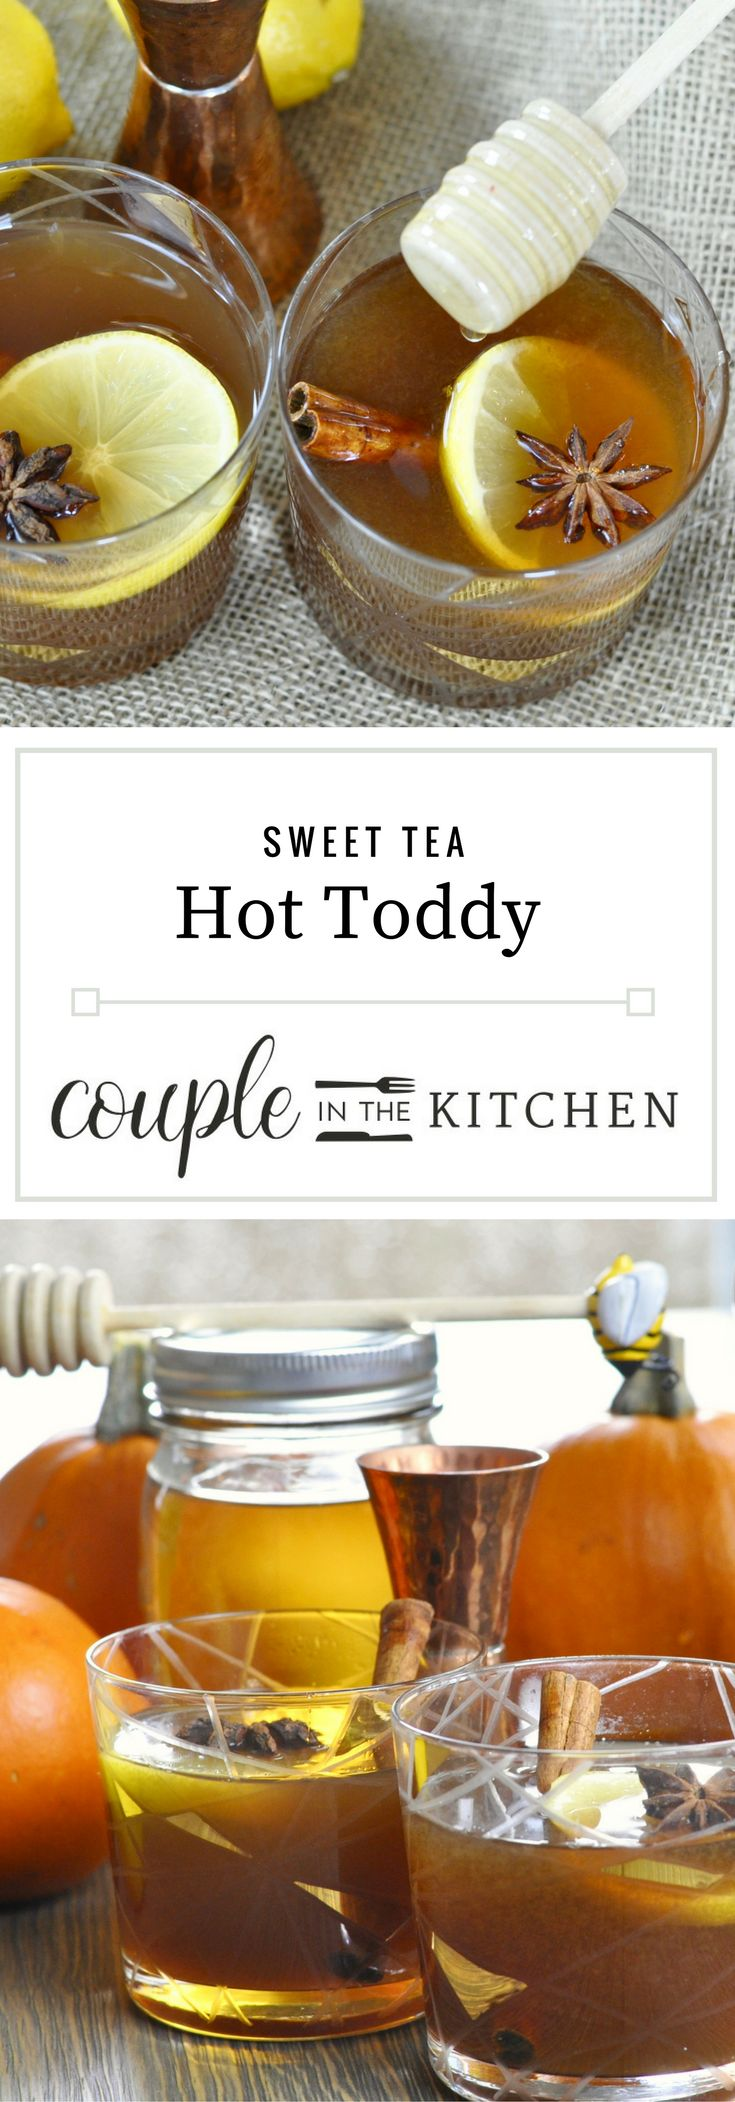 Best 25 hot toddy ideas on pinterest toddy drink for Hot toddy drink recipe